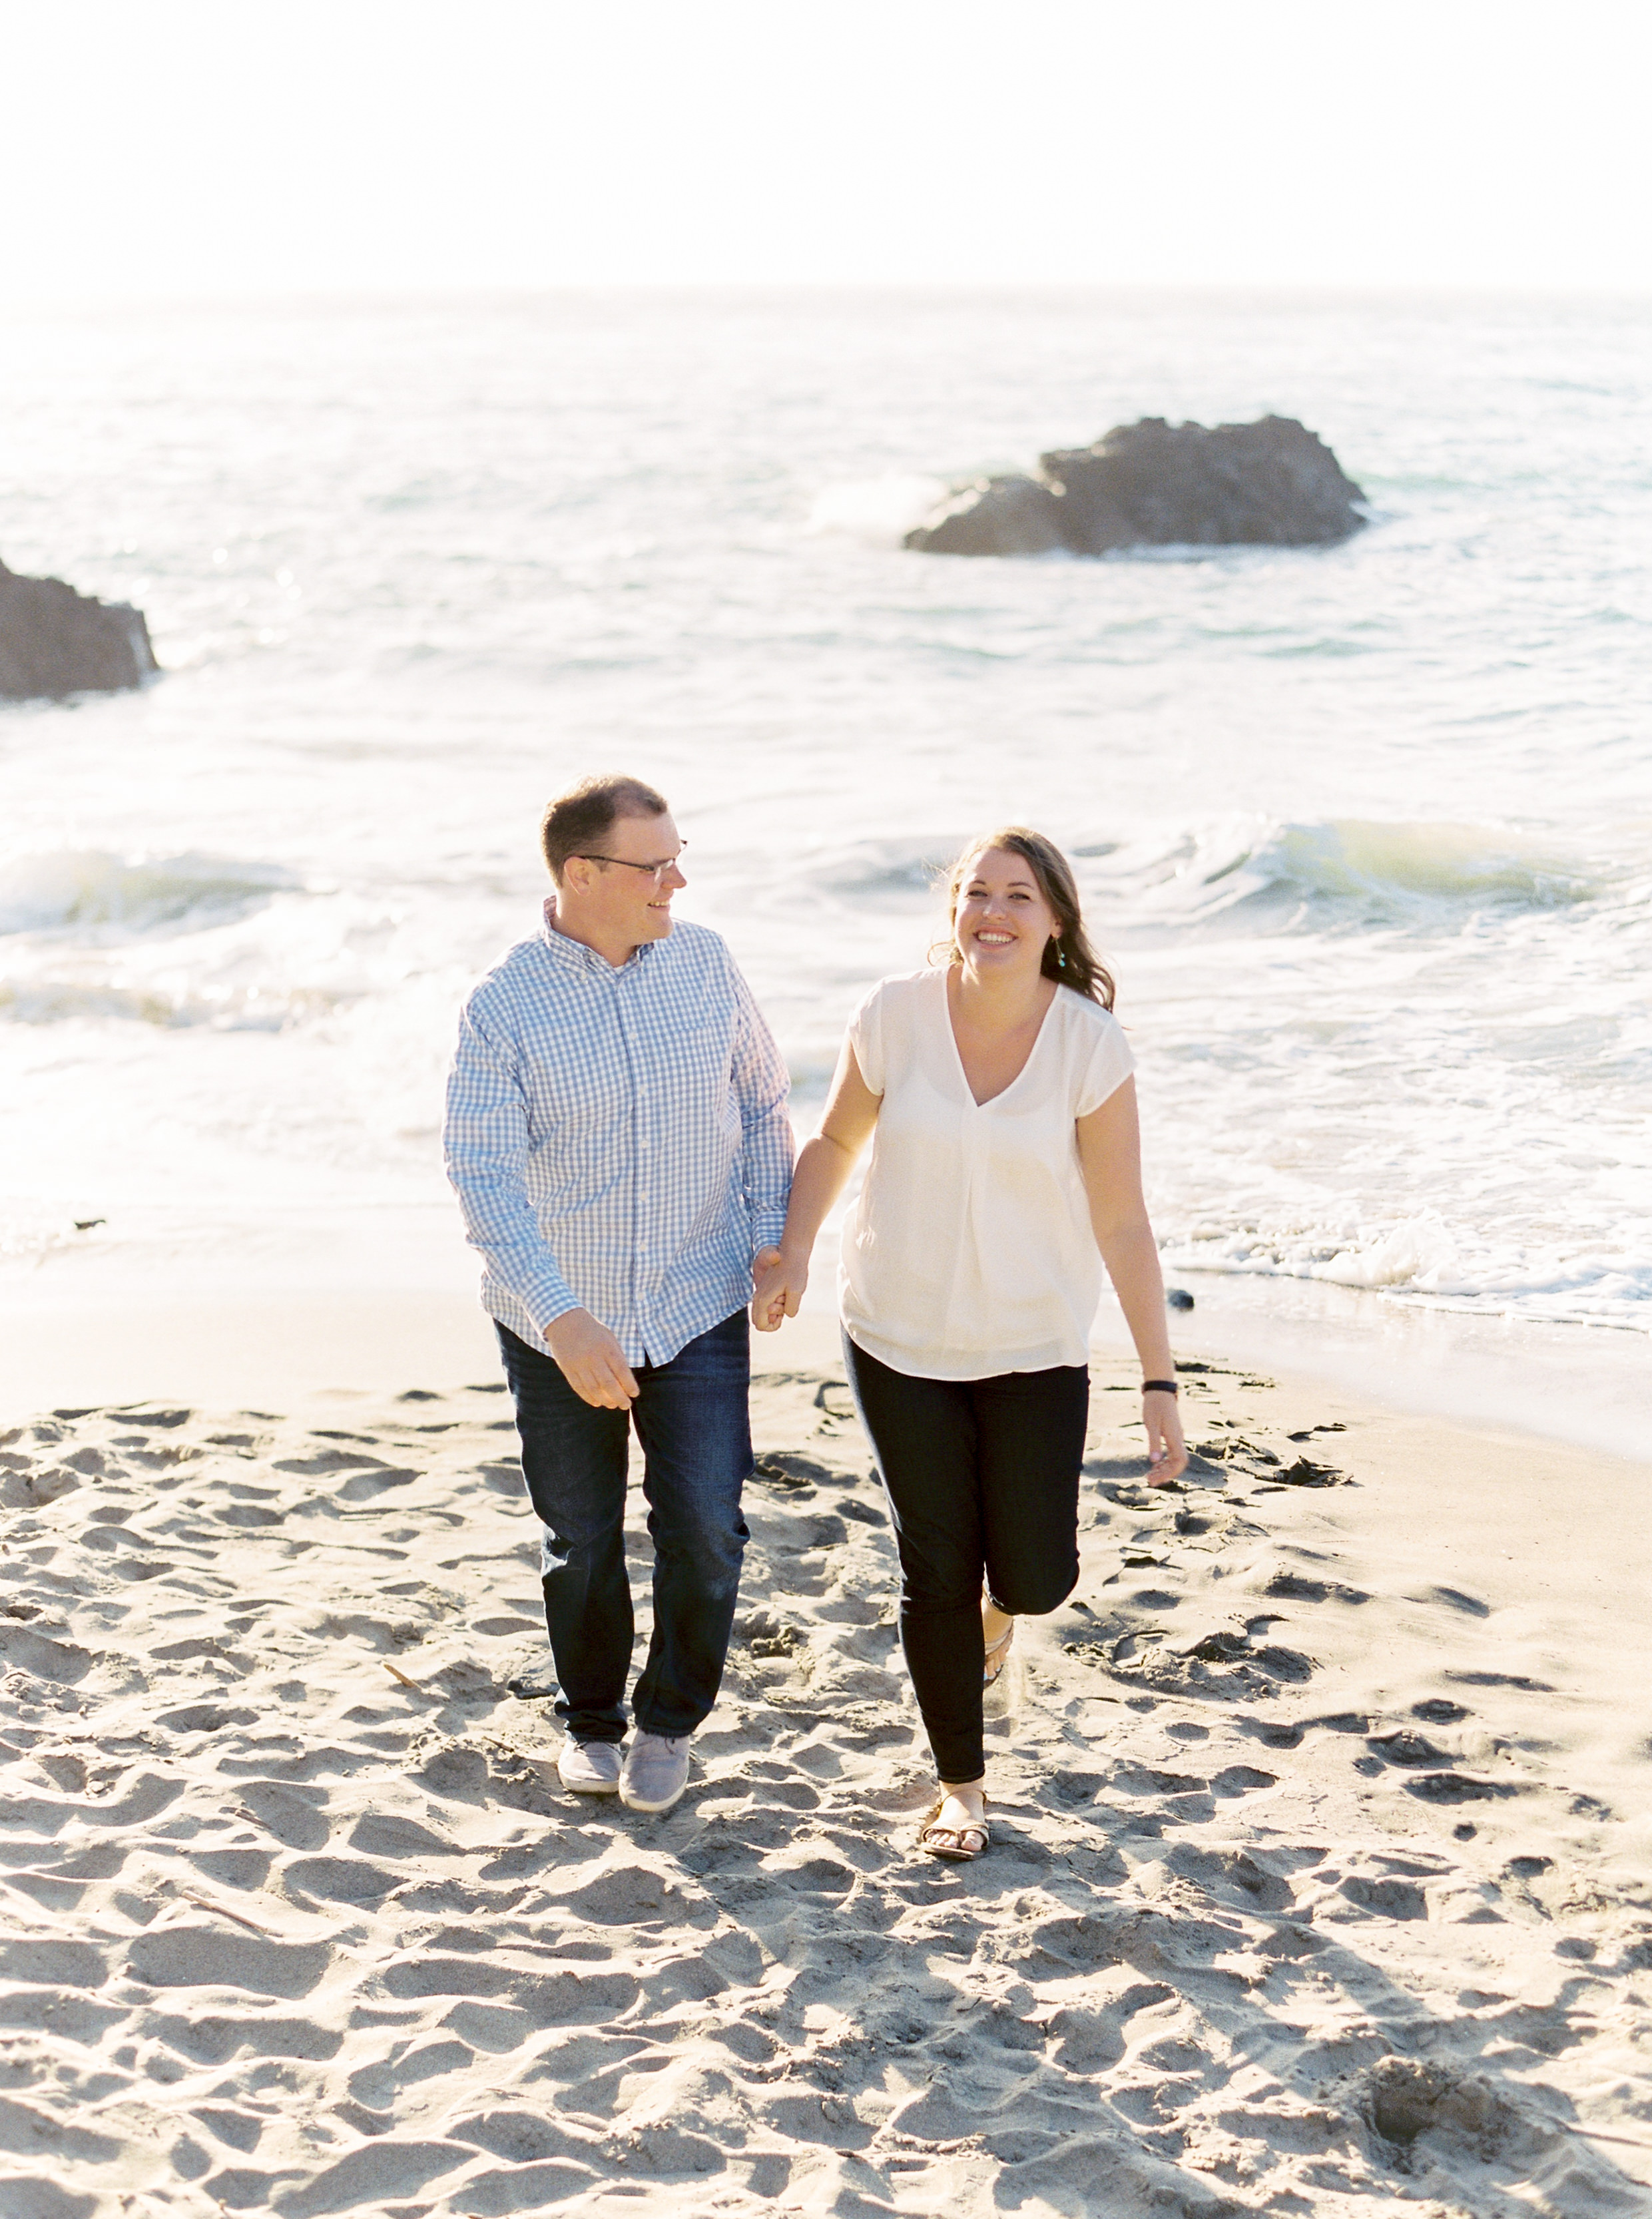 China-beach-engagement-photography-42.jpg